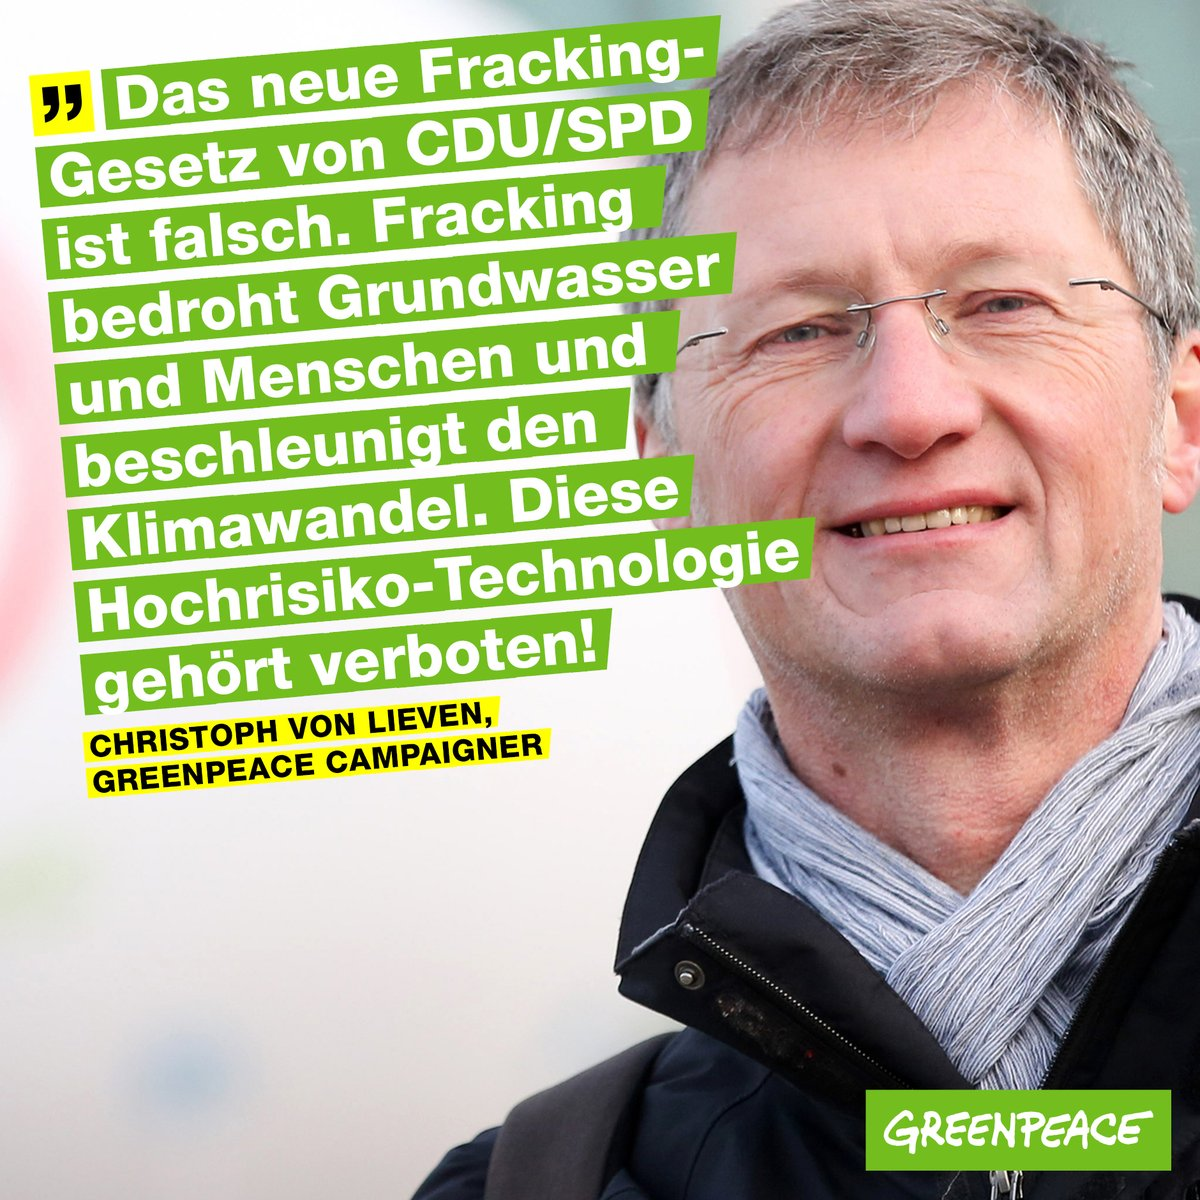 Greenpeace zu Fracking